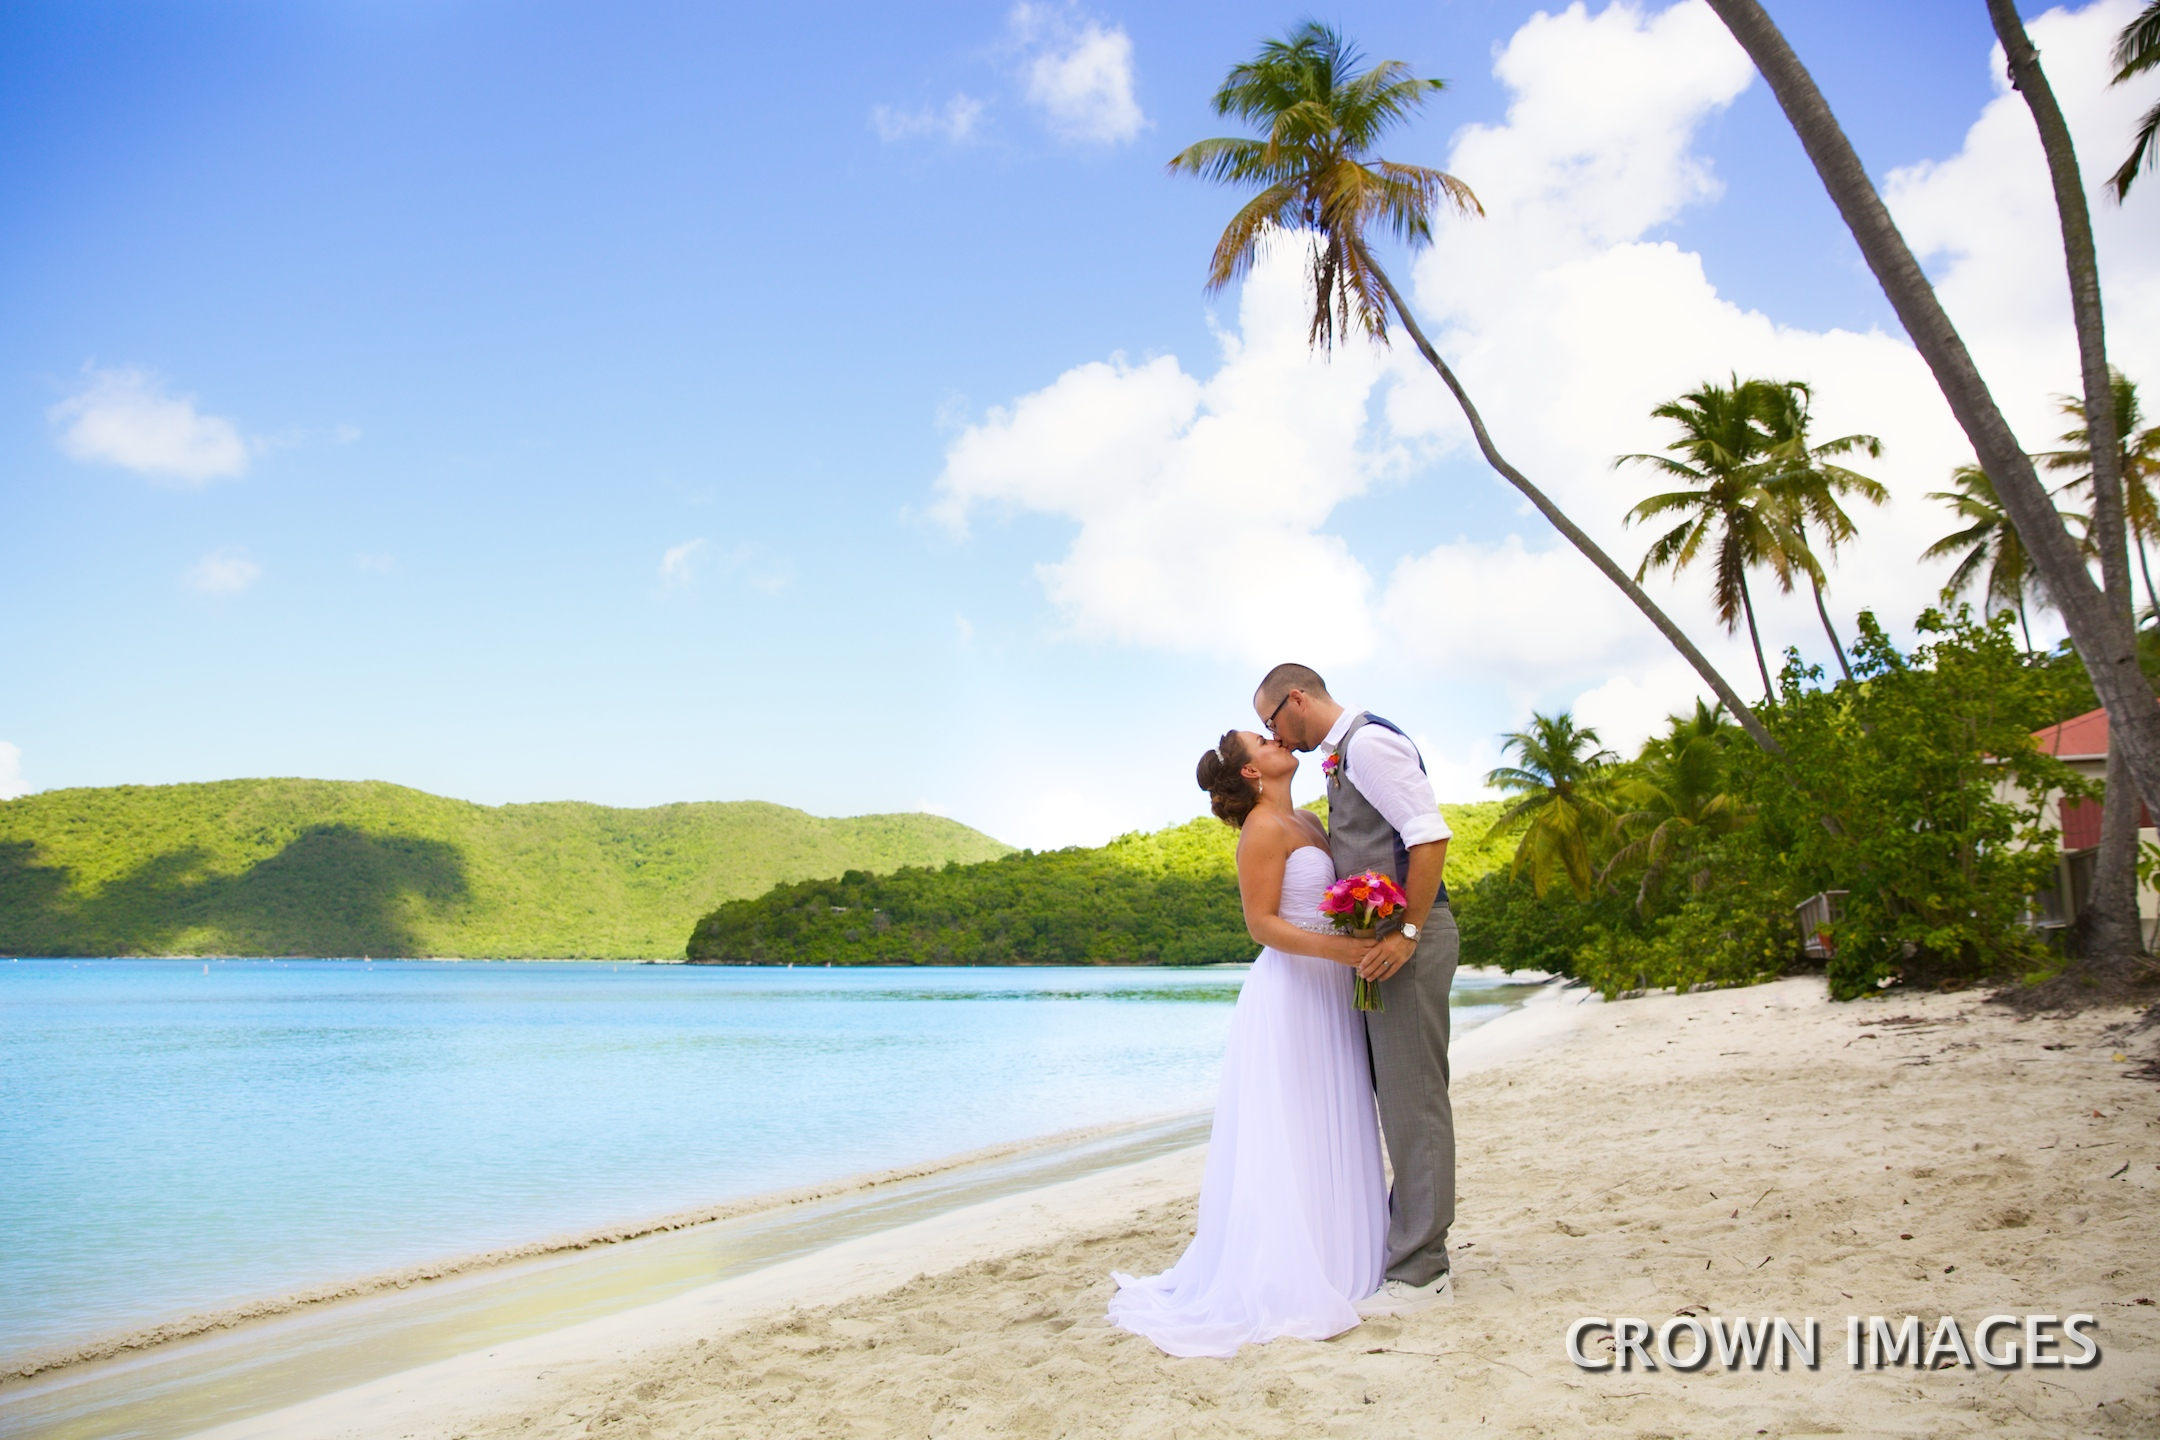 st john beach locations for a wedding photo by crown images